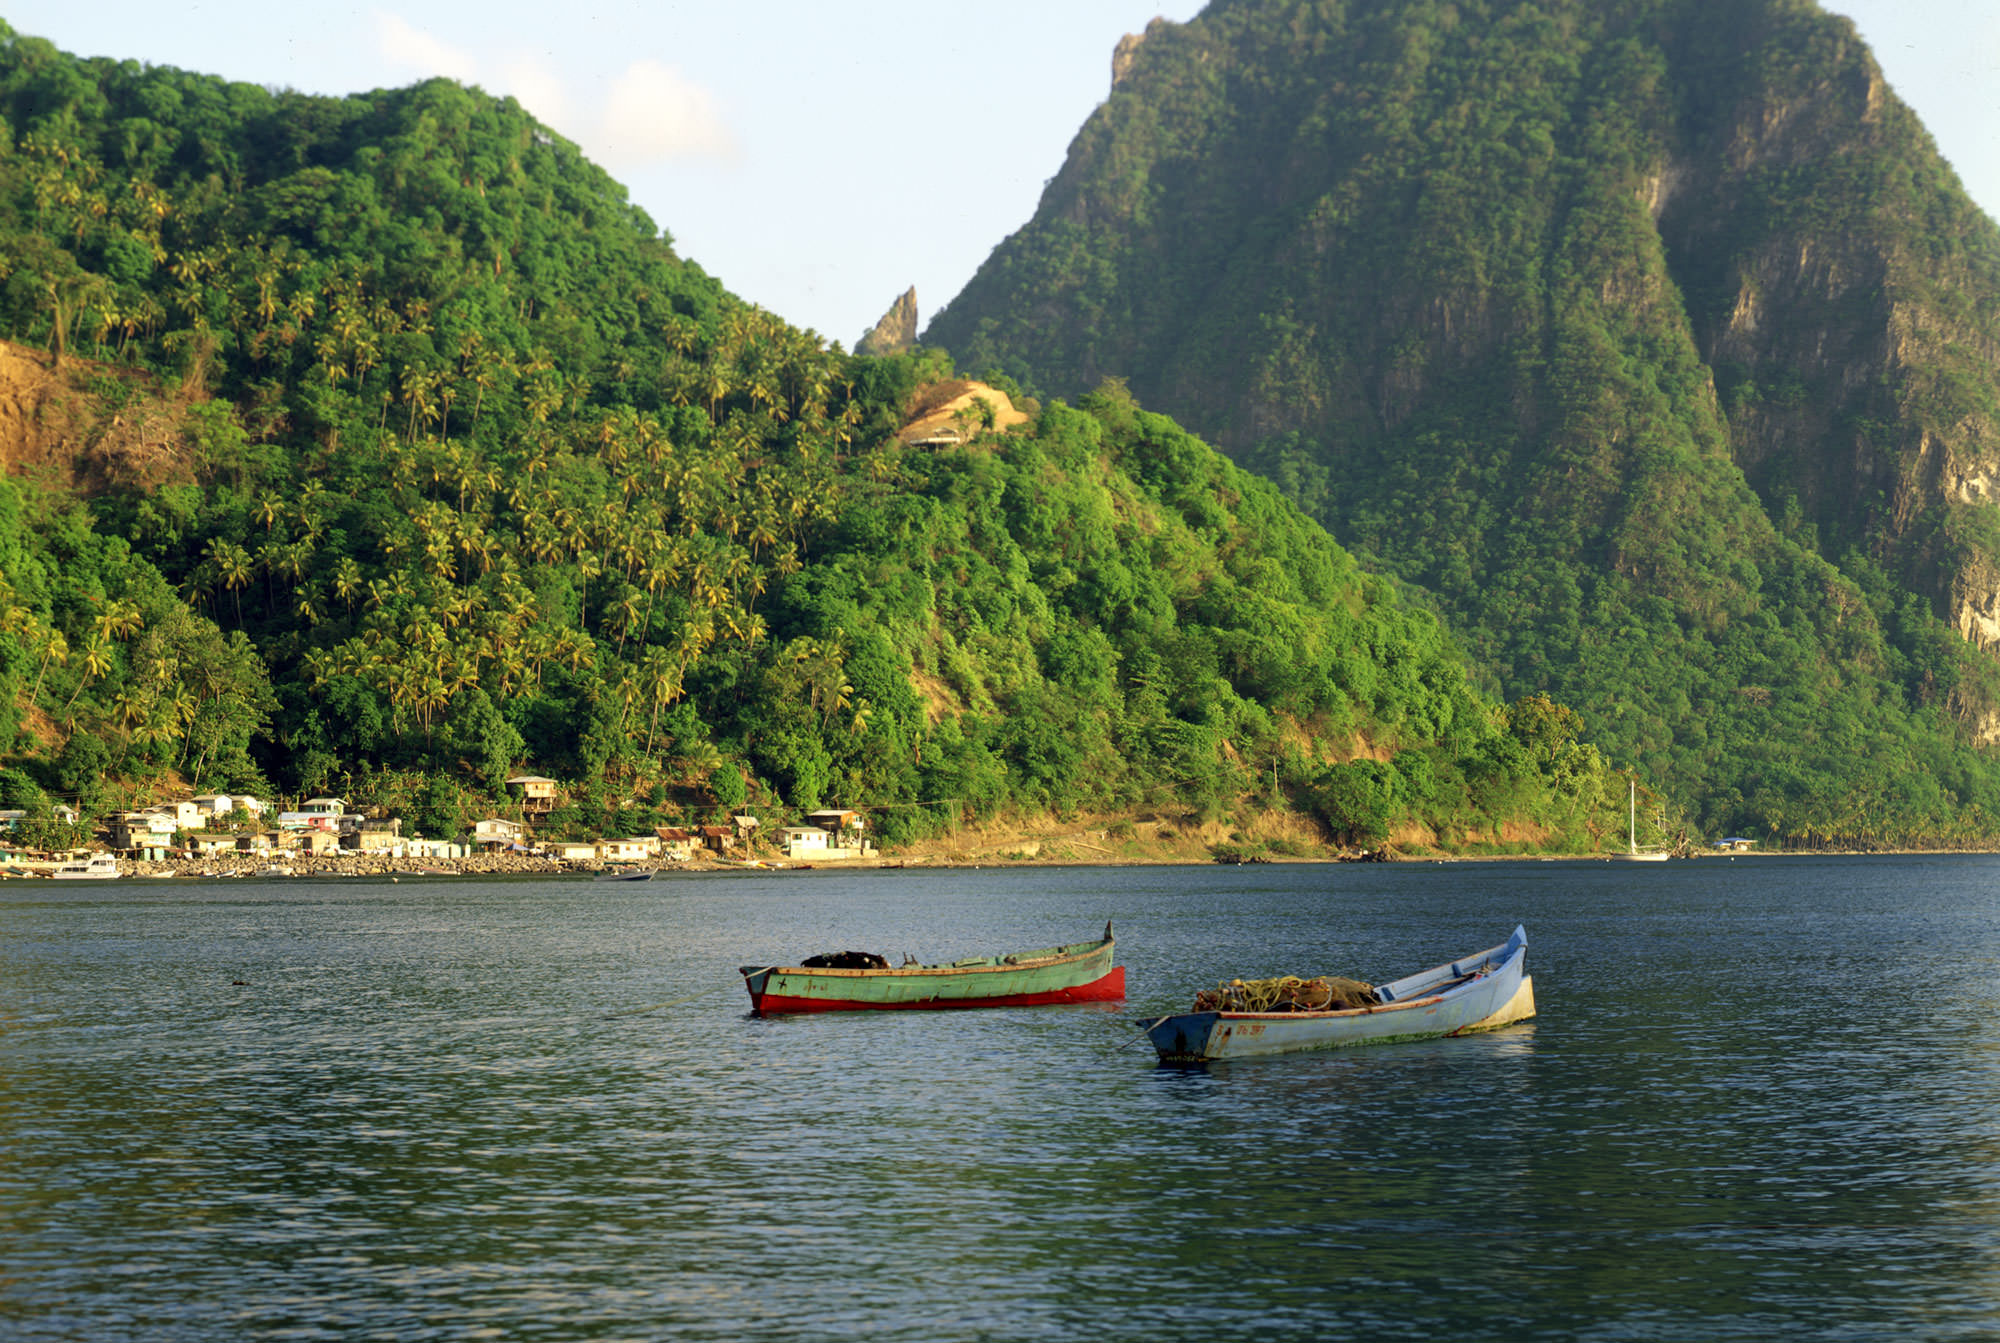 Fishing boats in Soufriere, St. Lucia